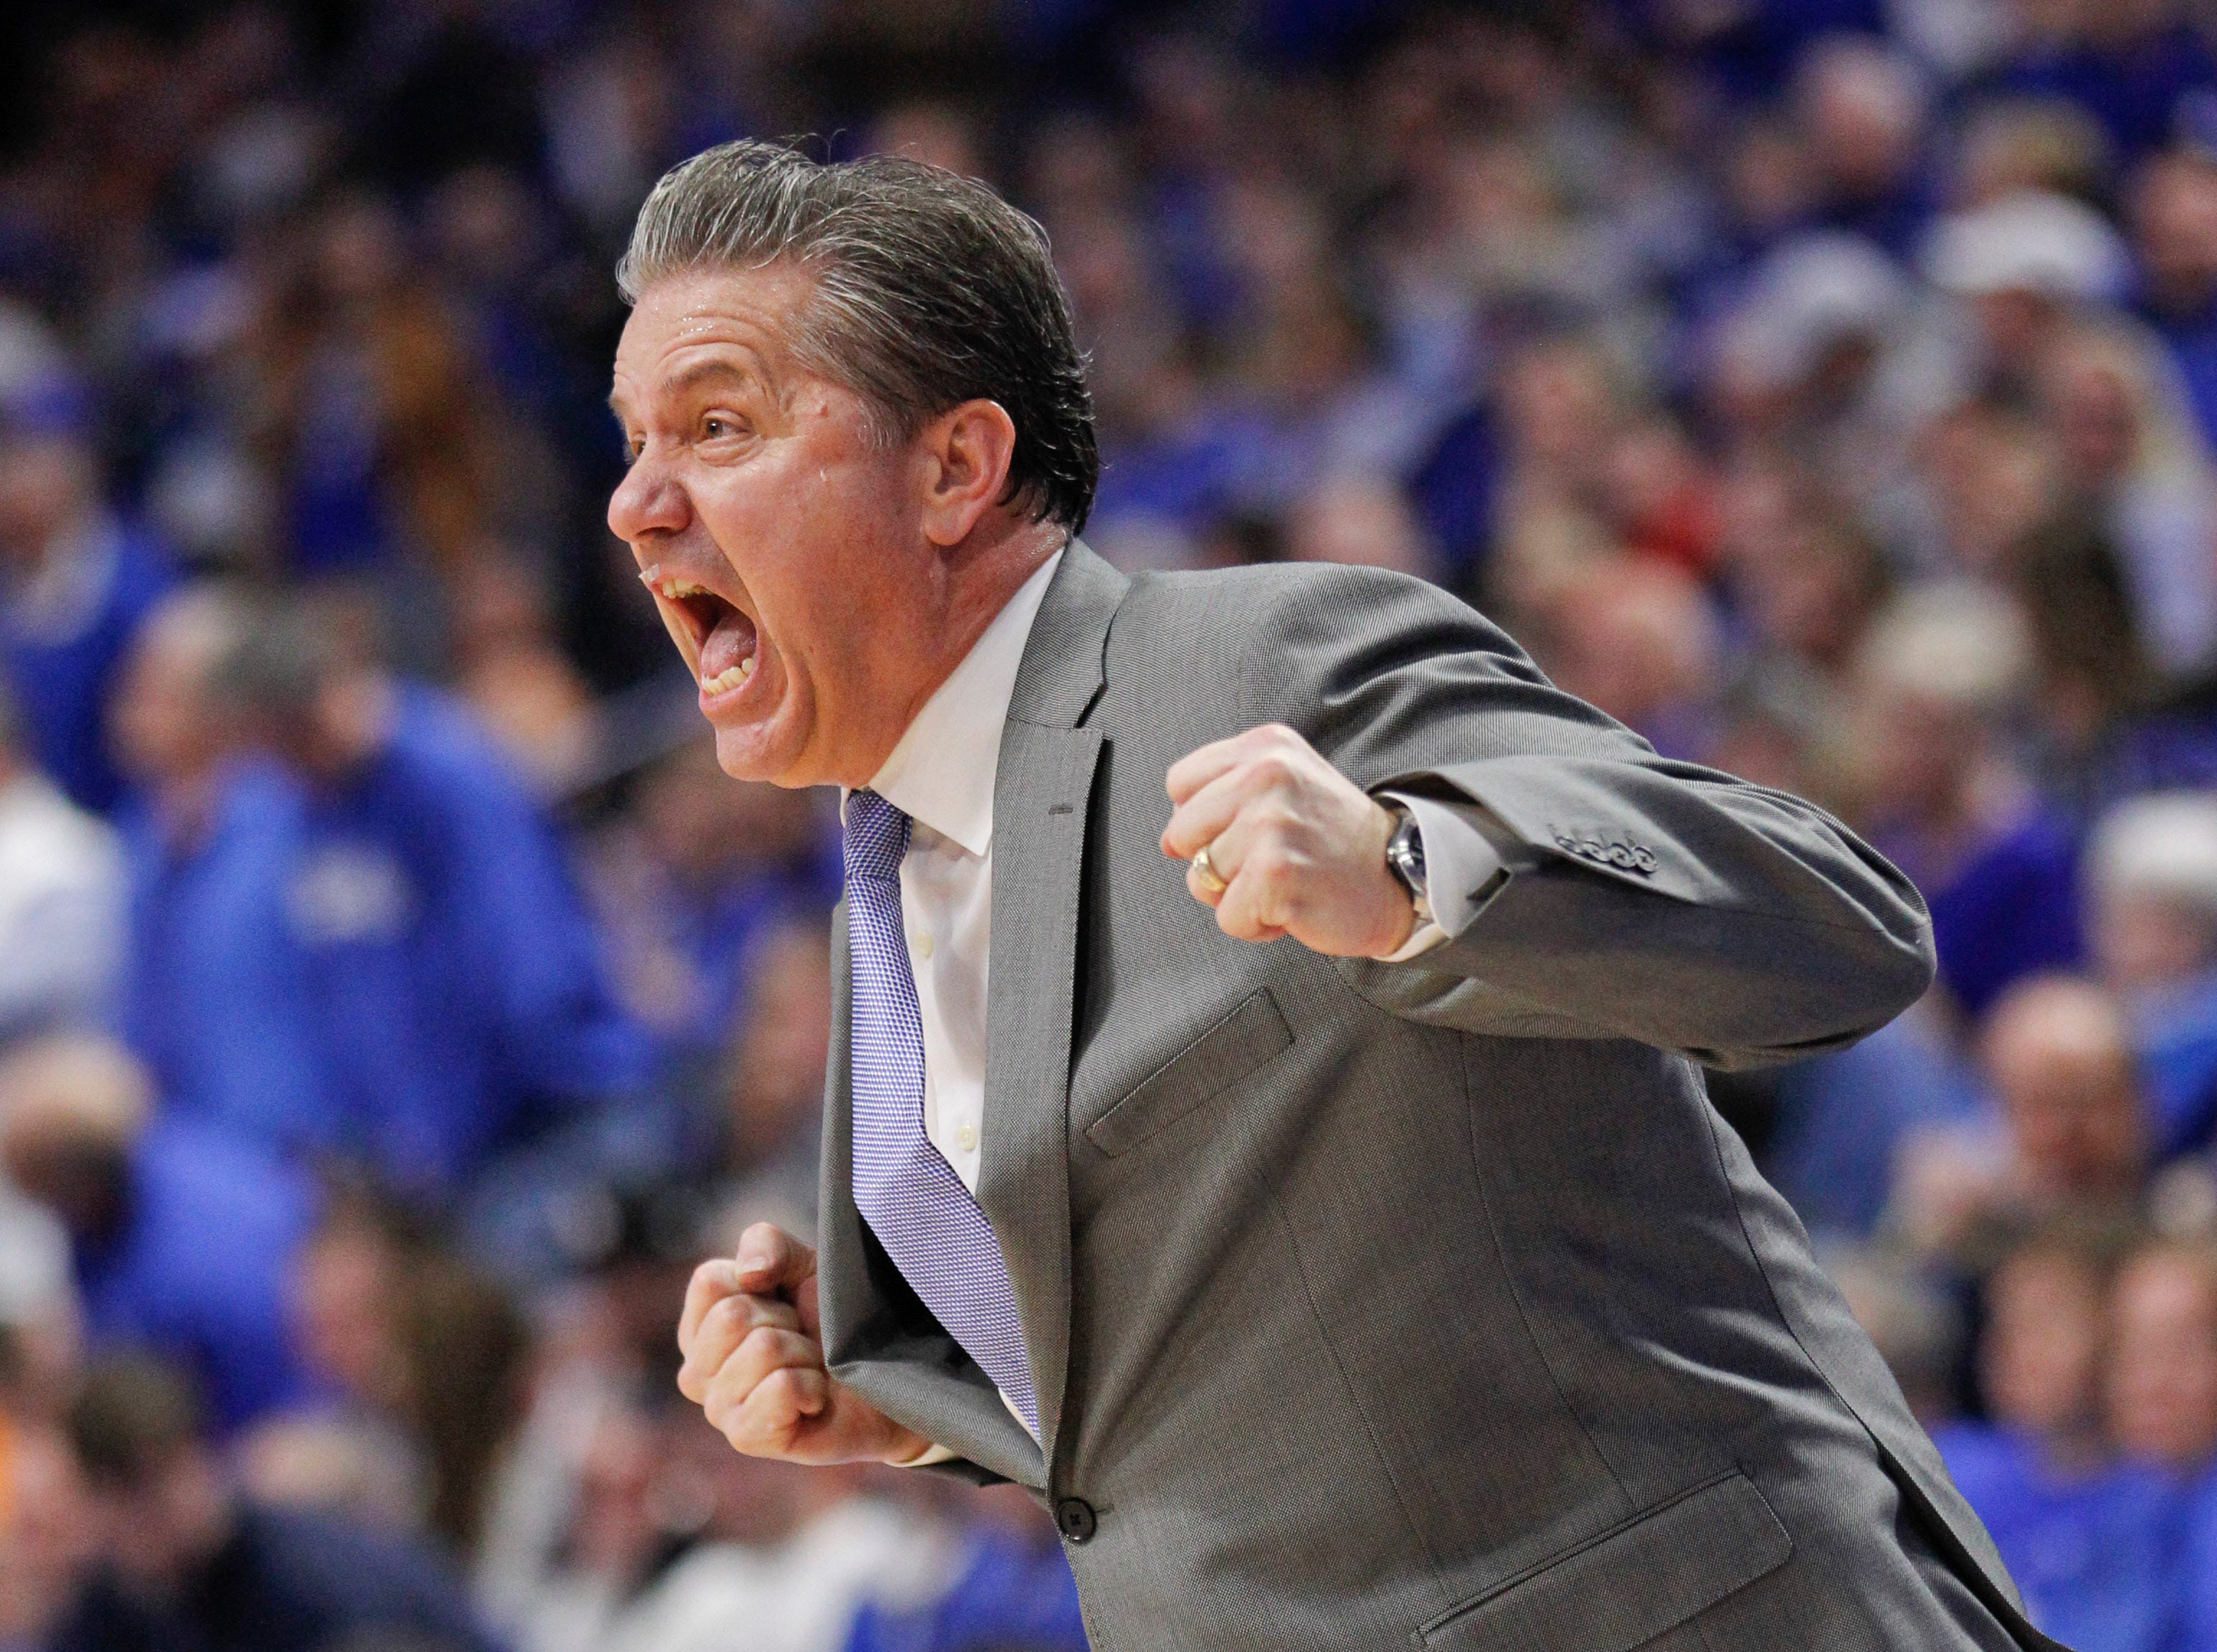 Feb. 16: Kentucky Wildcats head coach John Calipari reacts during the second half against the Tennessee Volunteers at Rupp Arena.